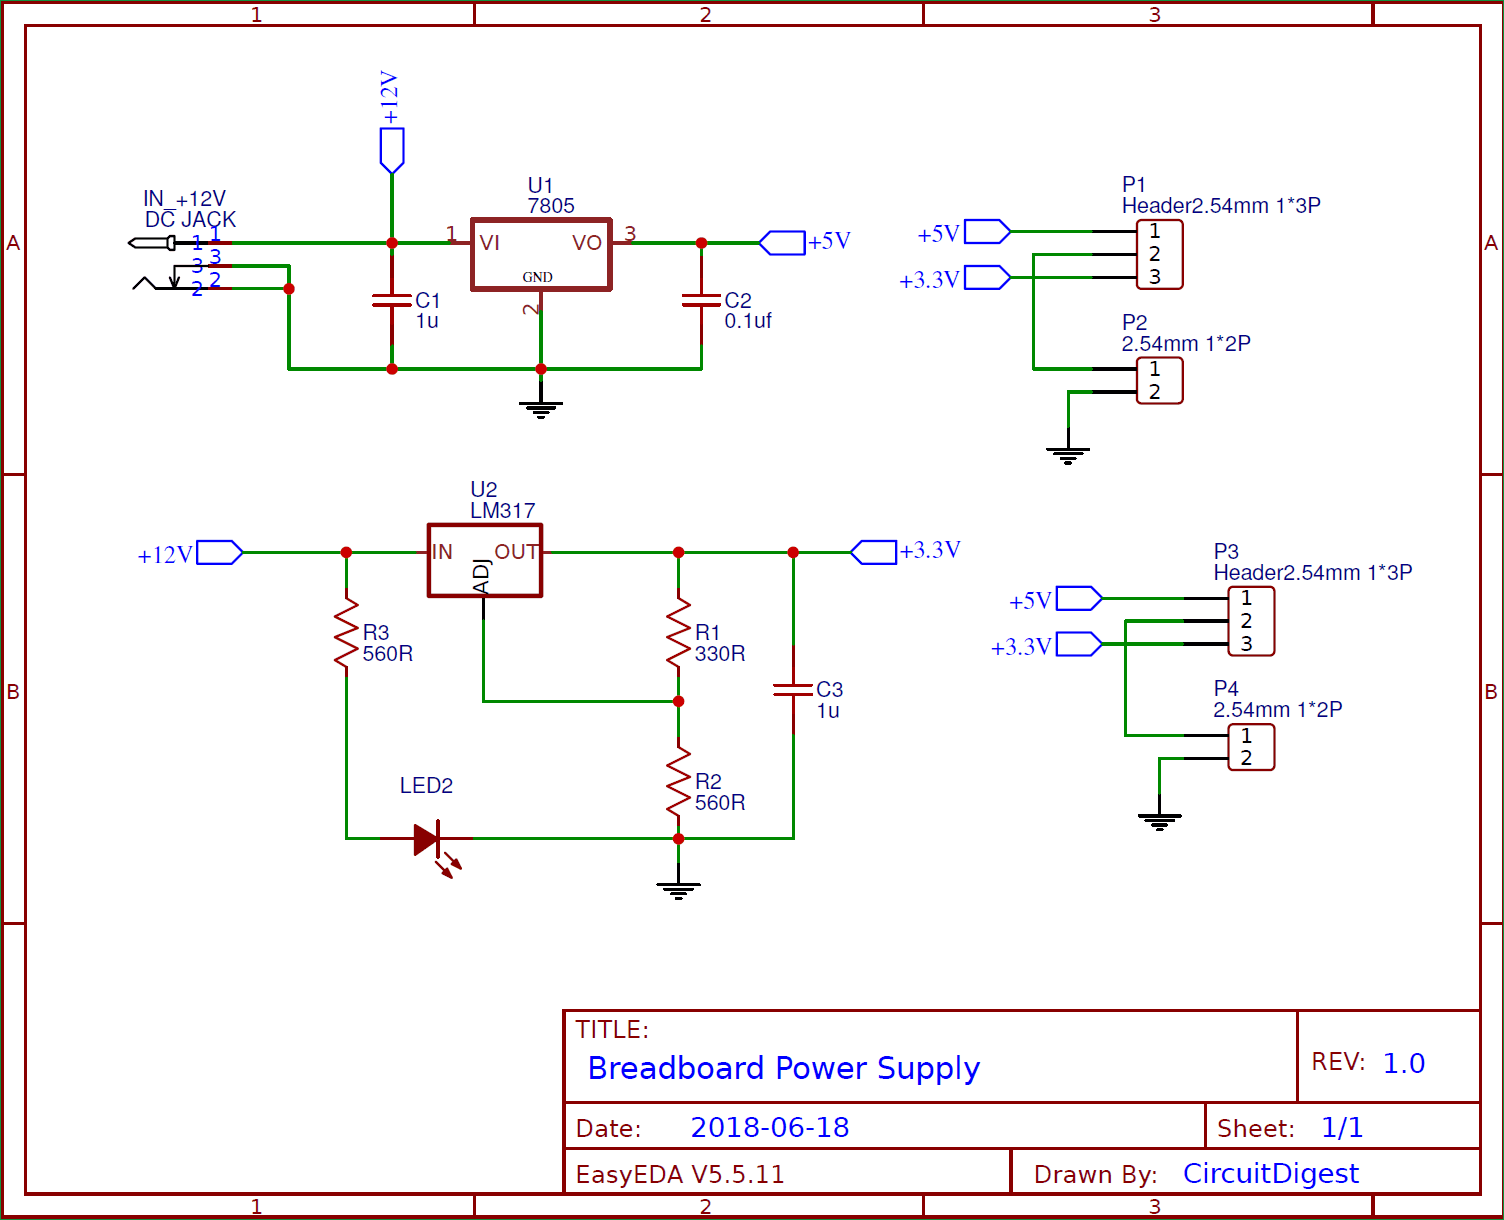 Diy Power Supply Diagrams - the portal and forum of wiring